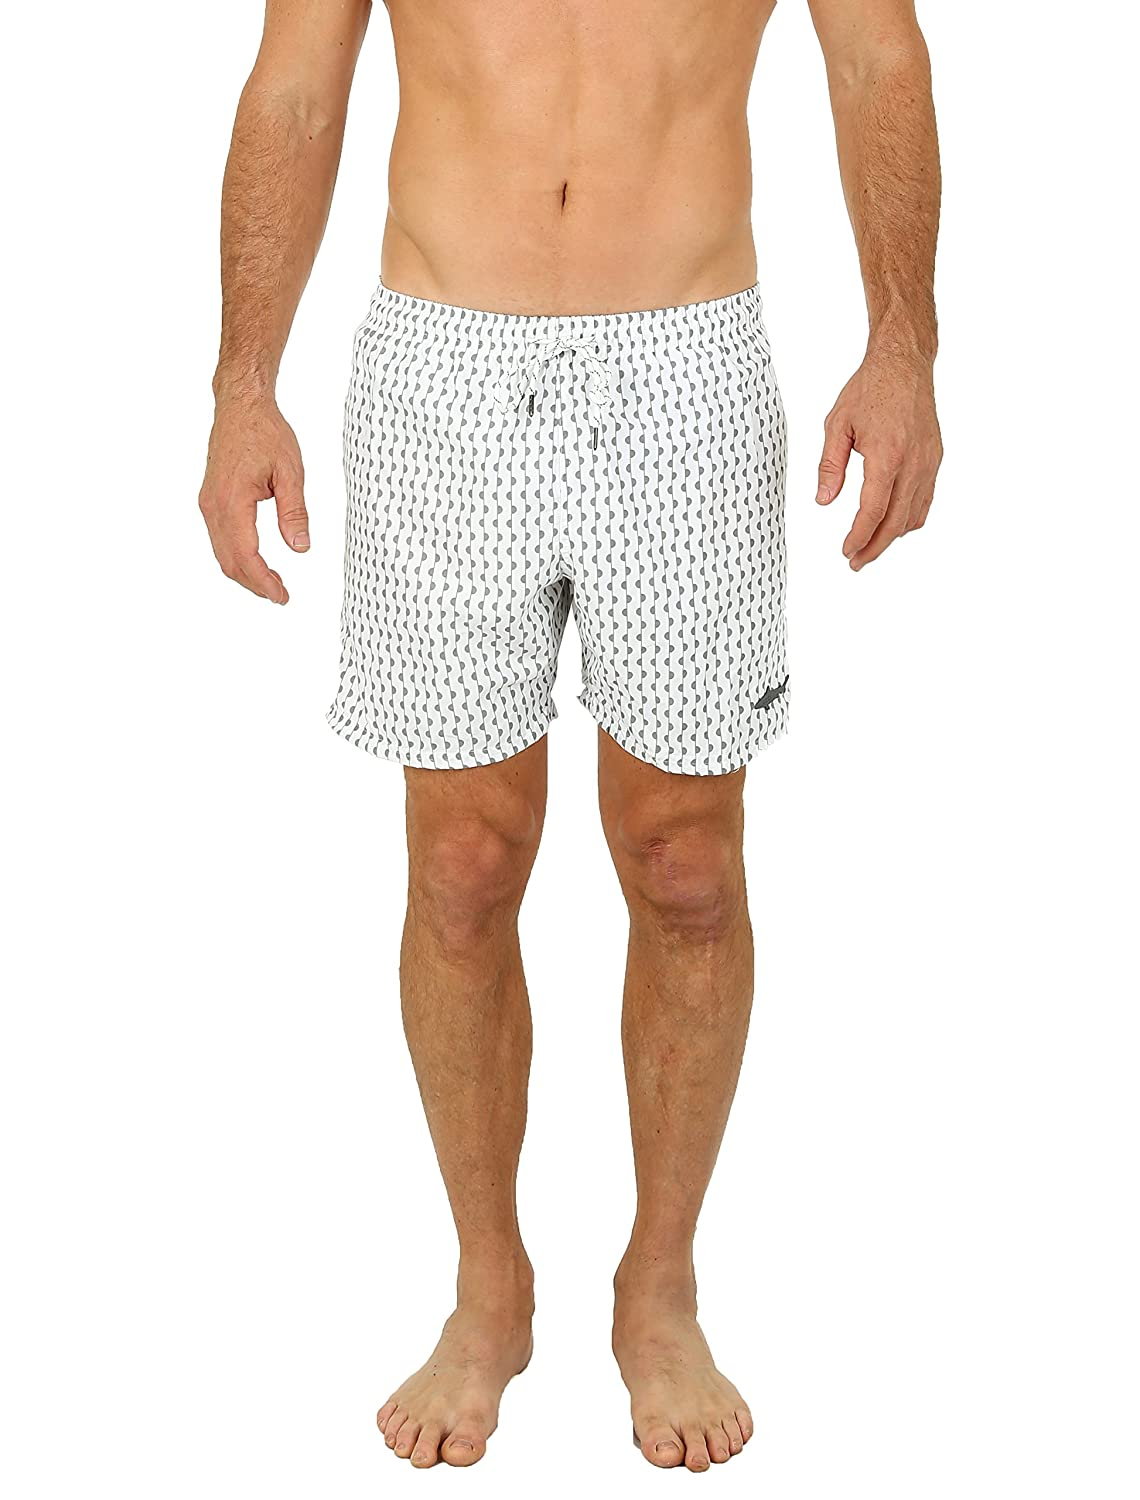 UZZI Men's Bimini Swim Trunks